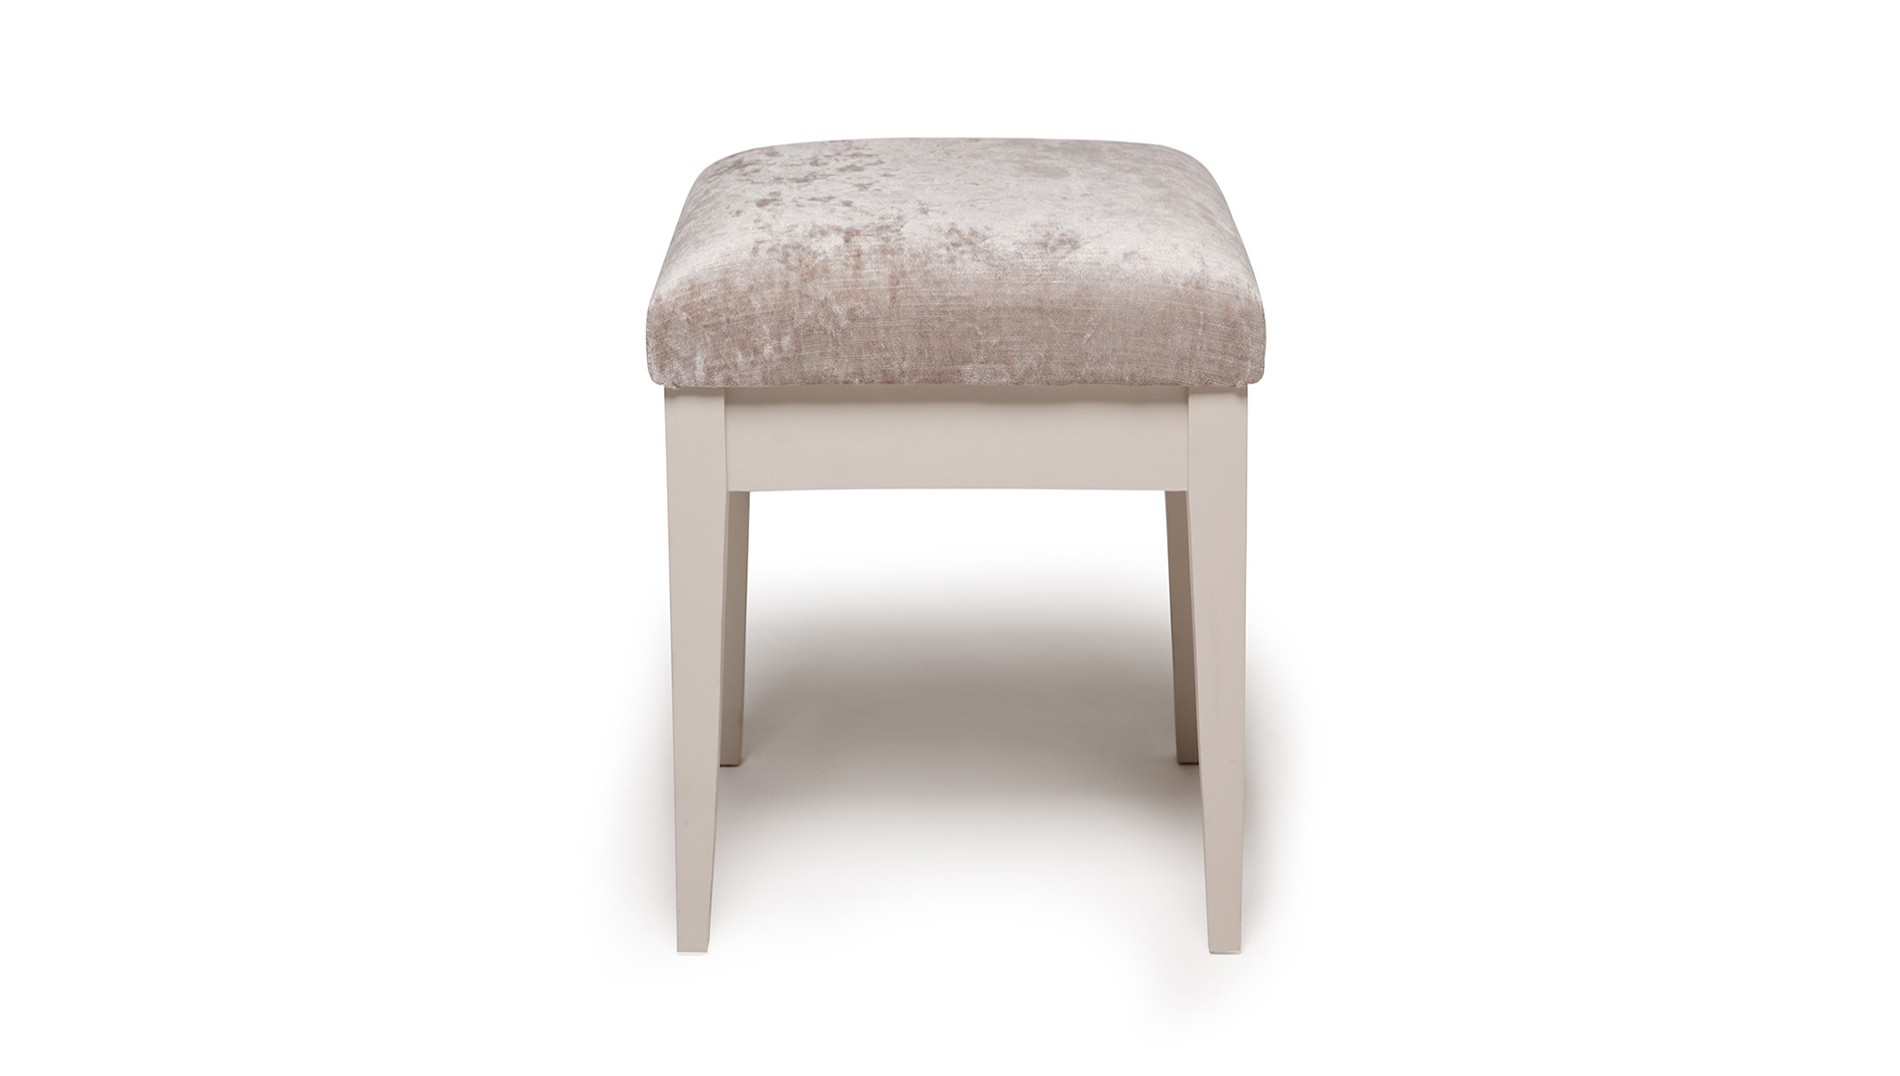 Compact ... walton dressing table stool | buy online at luxdeco ... flfdkqz